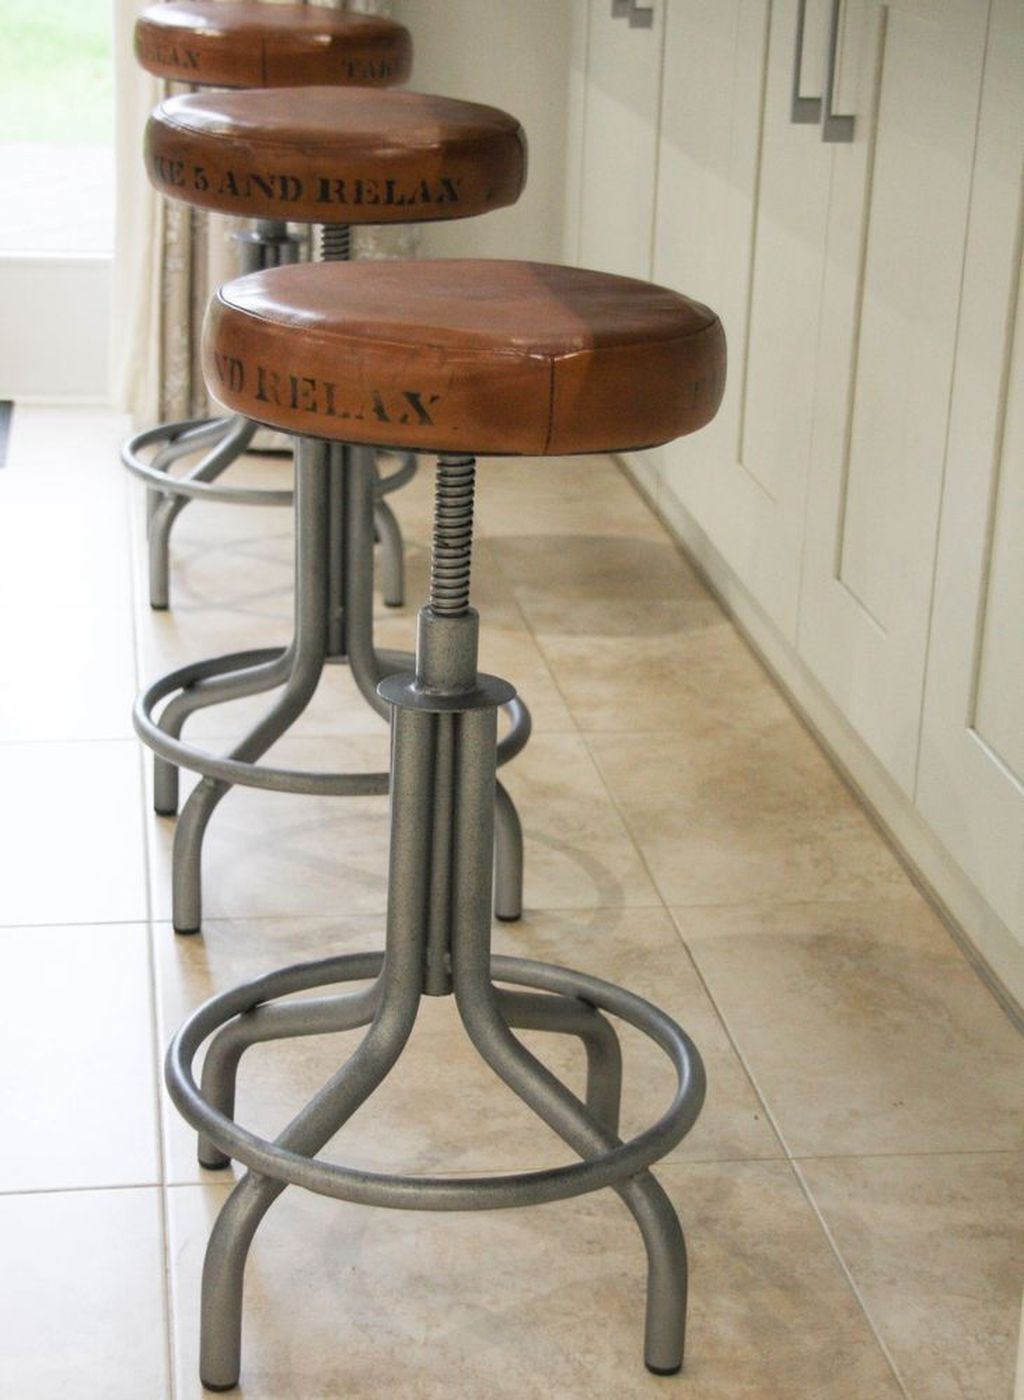 36 Perfect Bar Stools Design Ideas For Your Home In 2020 With Images Retro Bar Stools Vintage Bar Stools Industrial Bar Stools